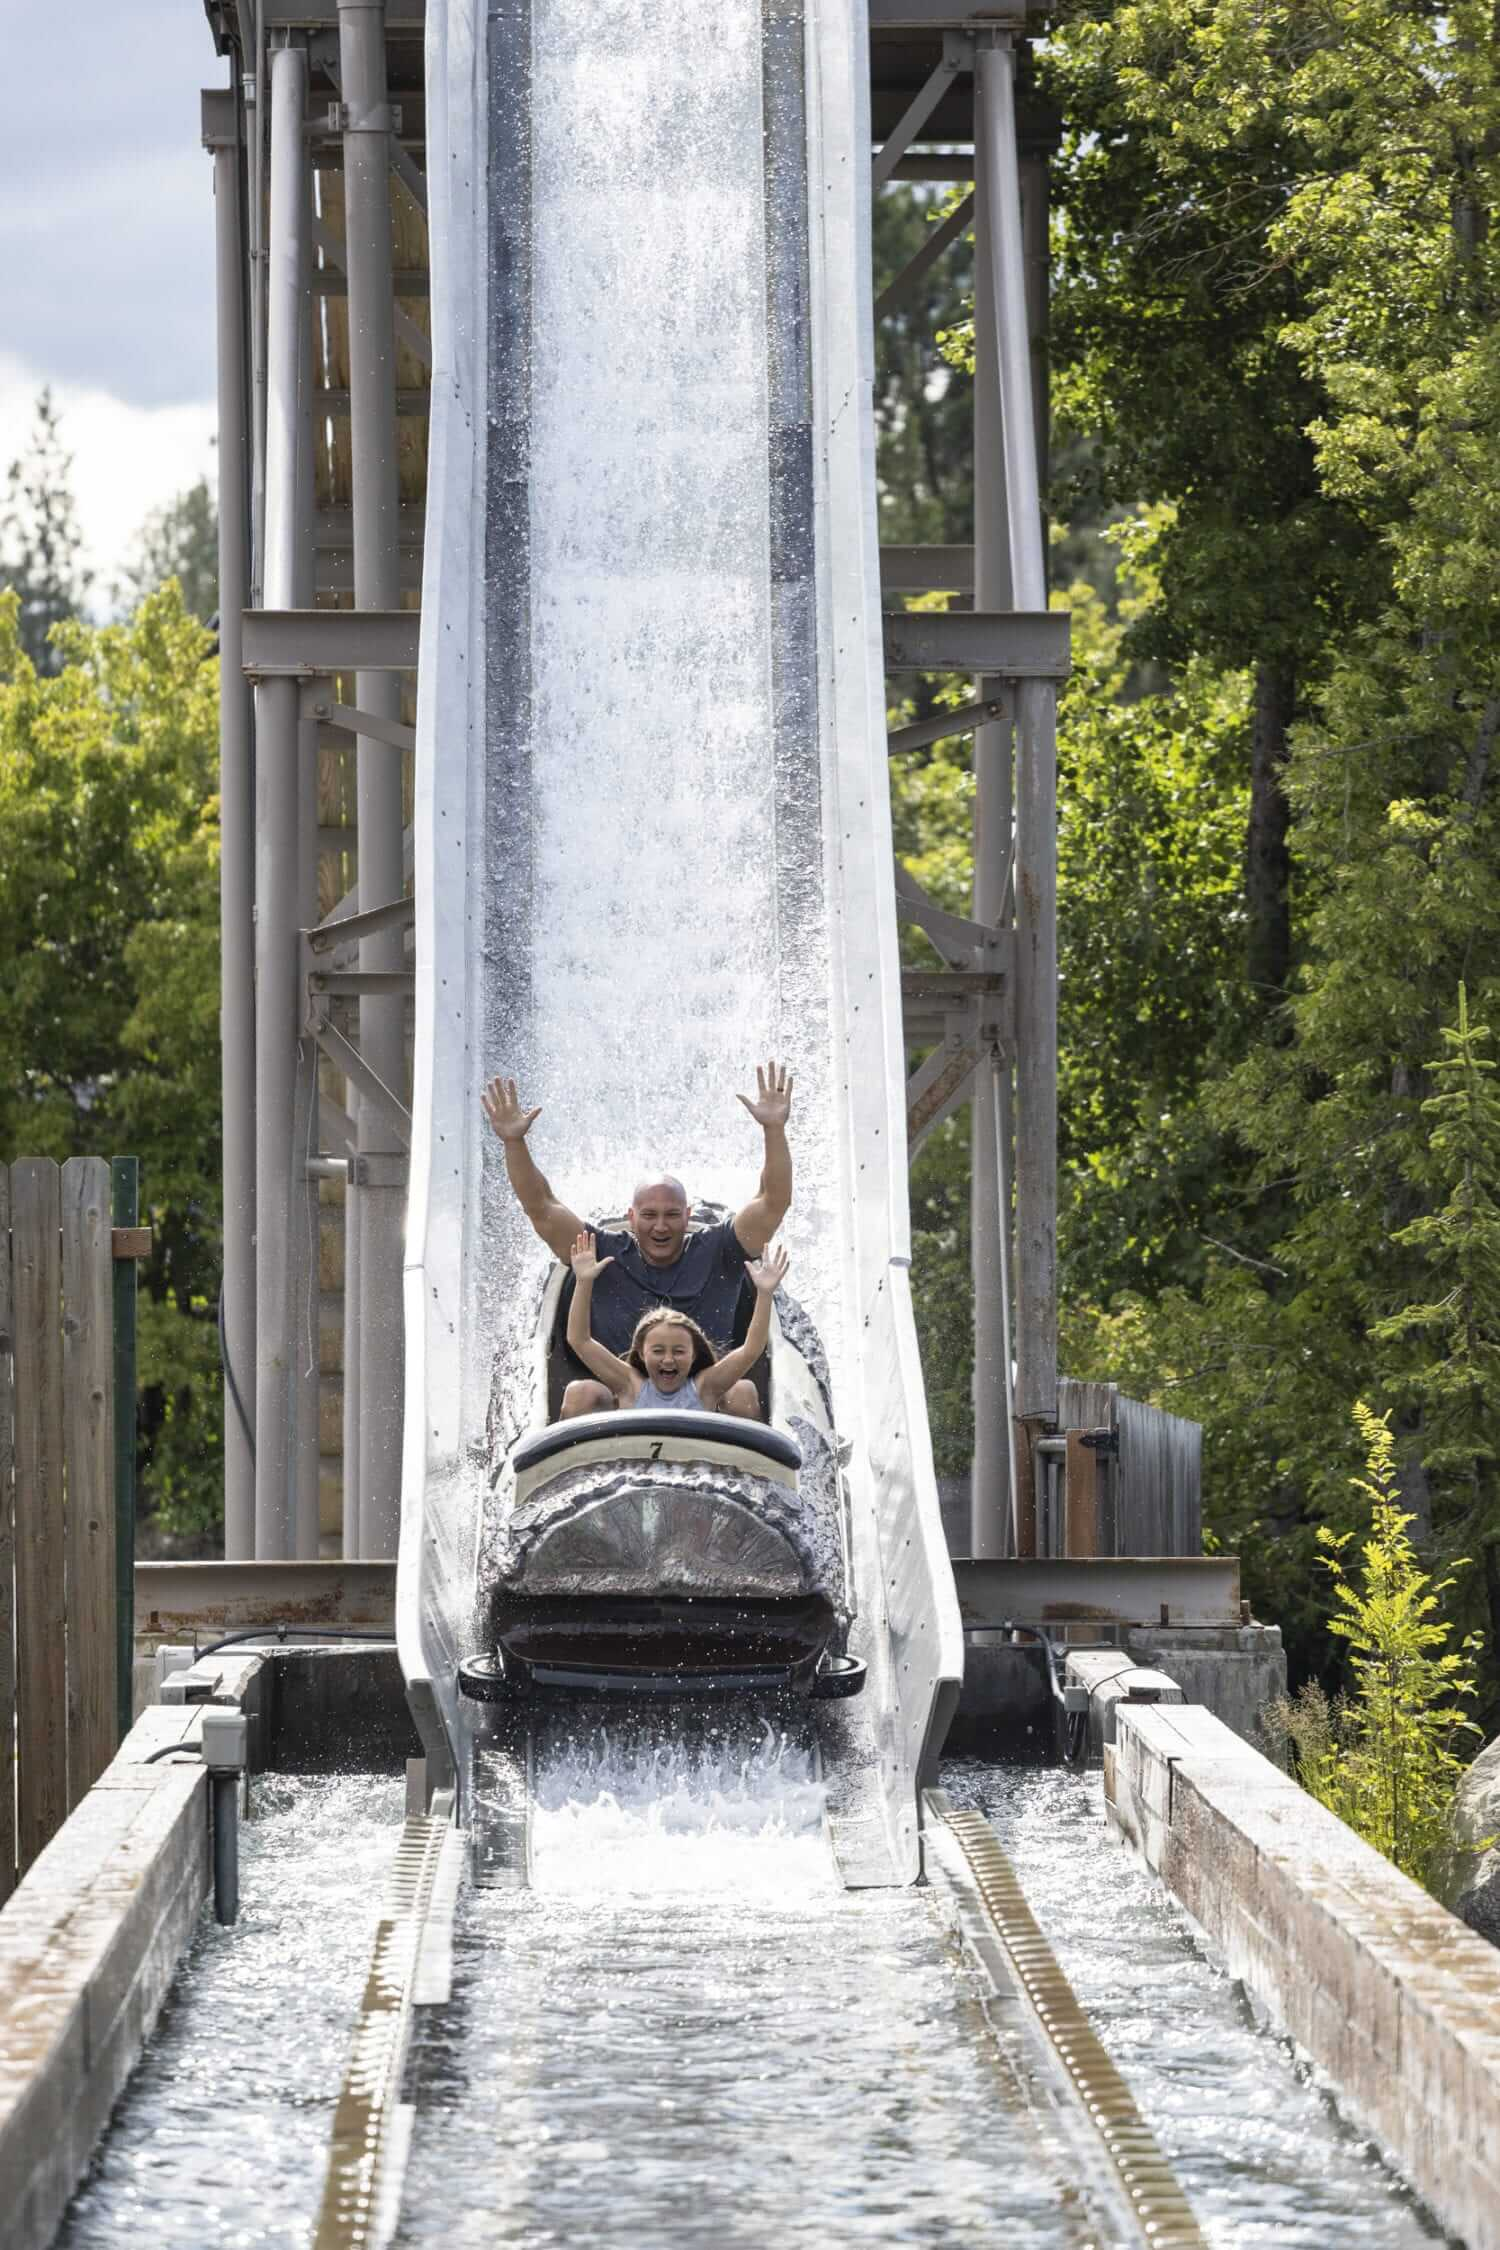 dad and daughter on splash ride at silverwood